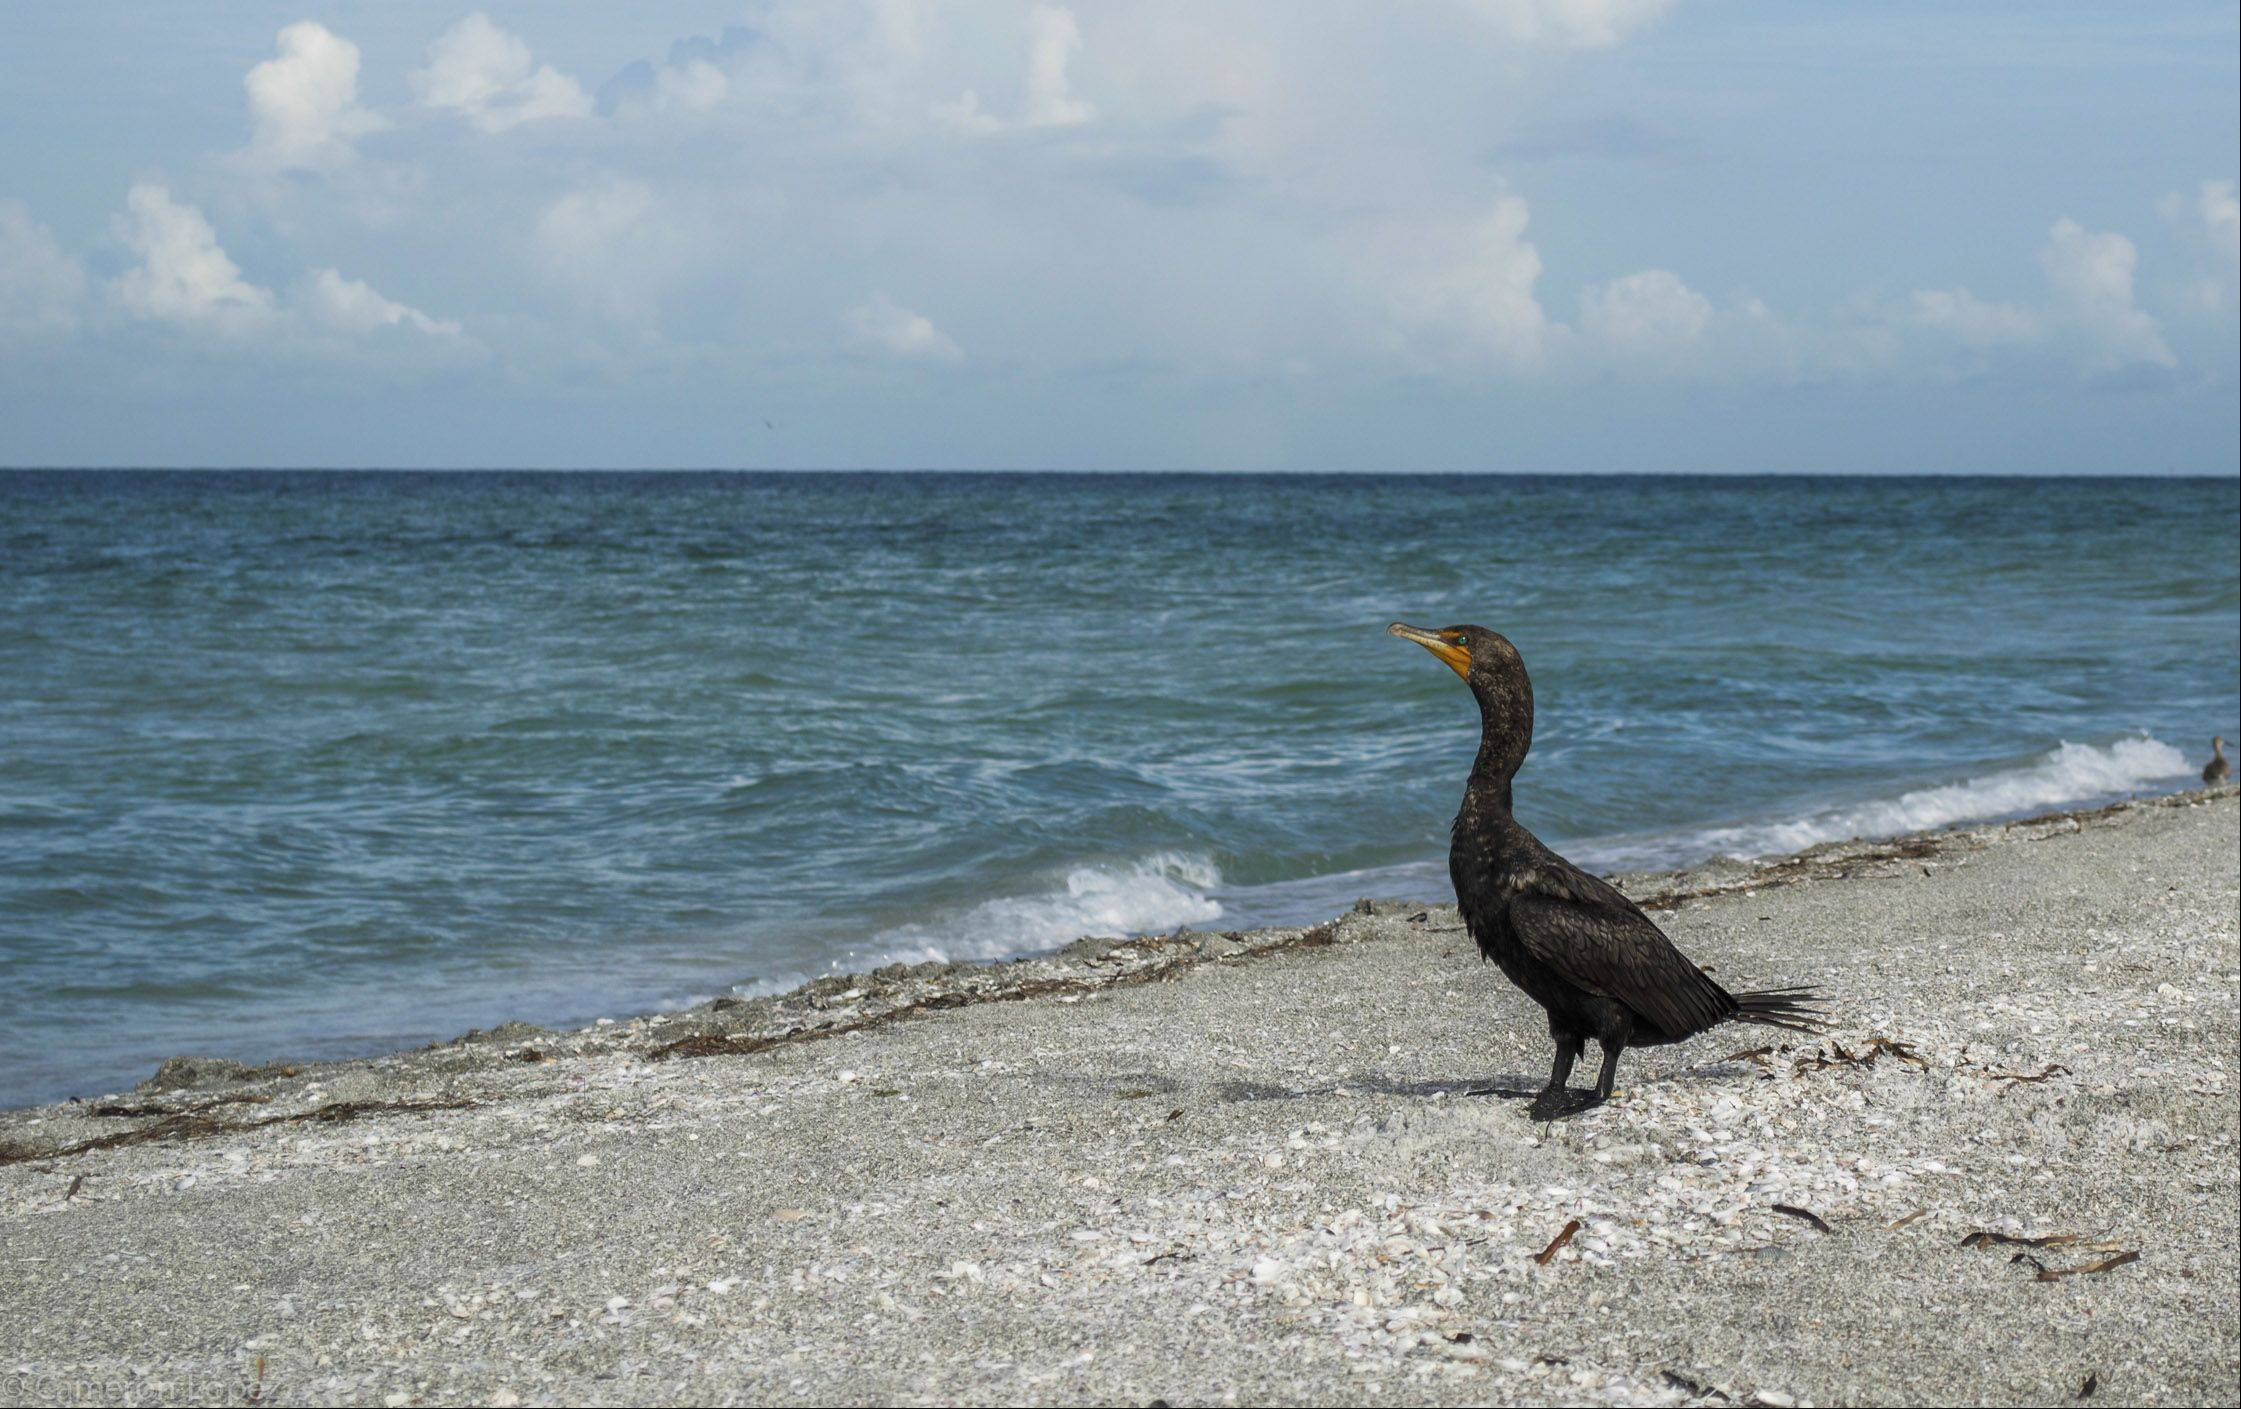 A black bird enjoys the view on the beach in Longboat Key, FL last month.